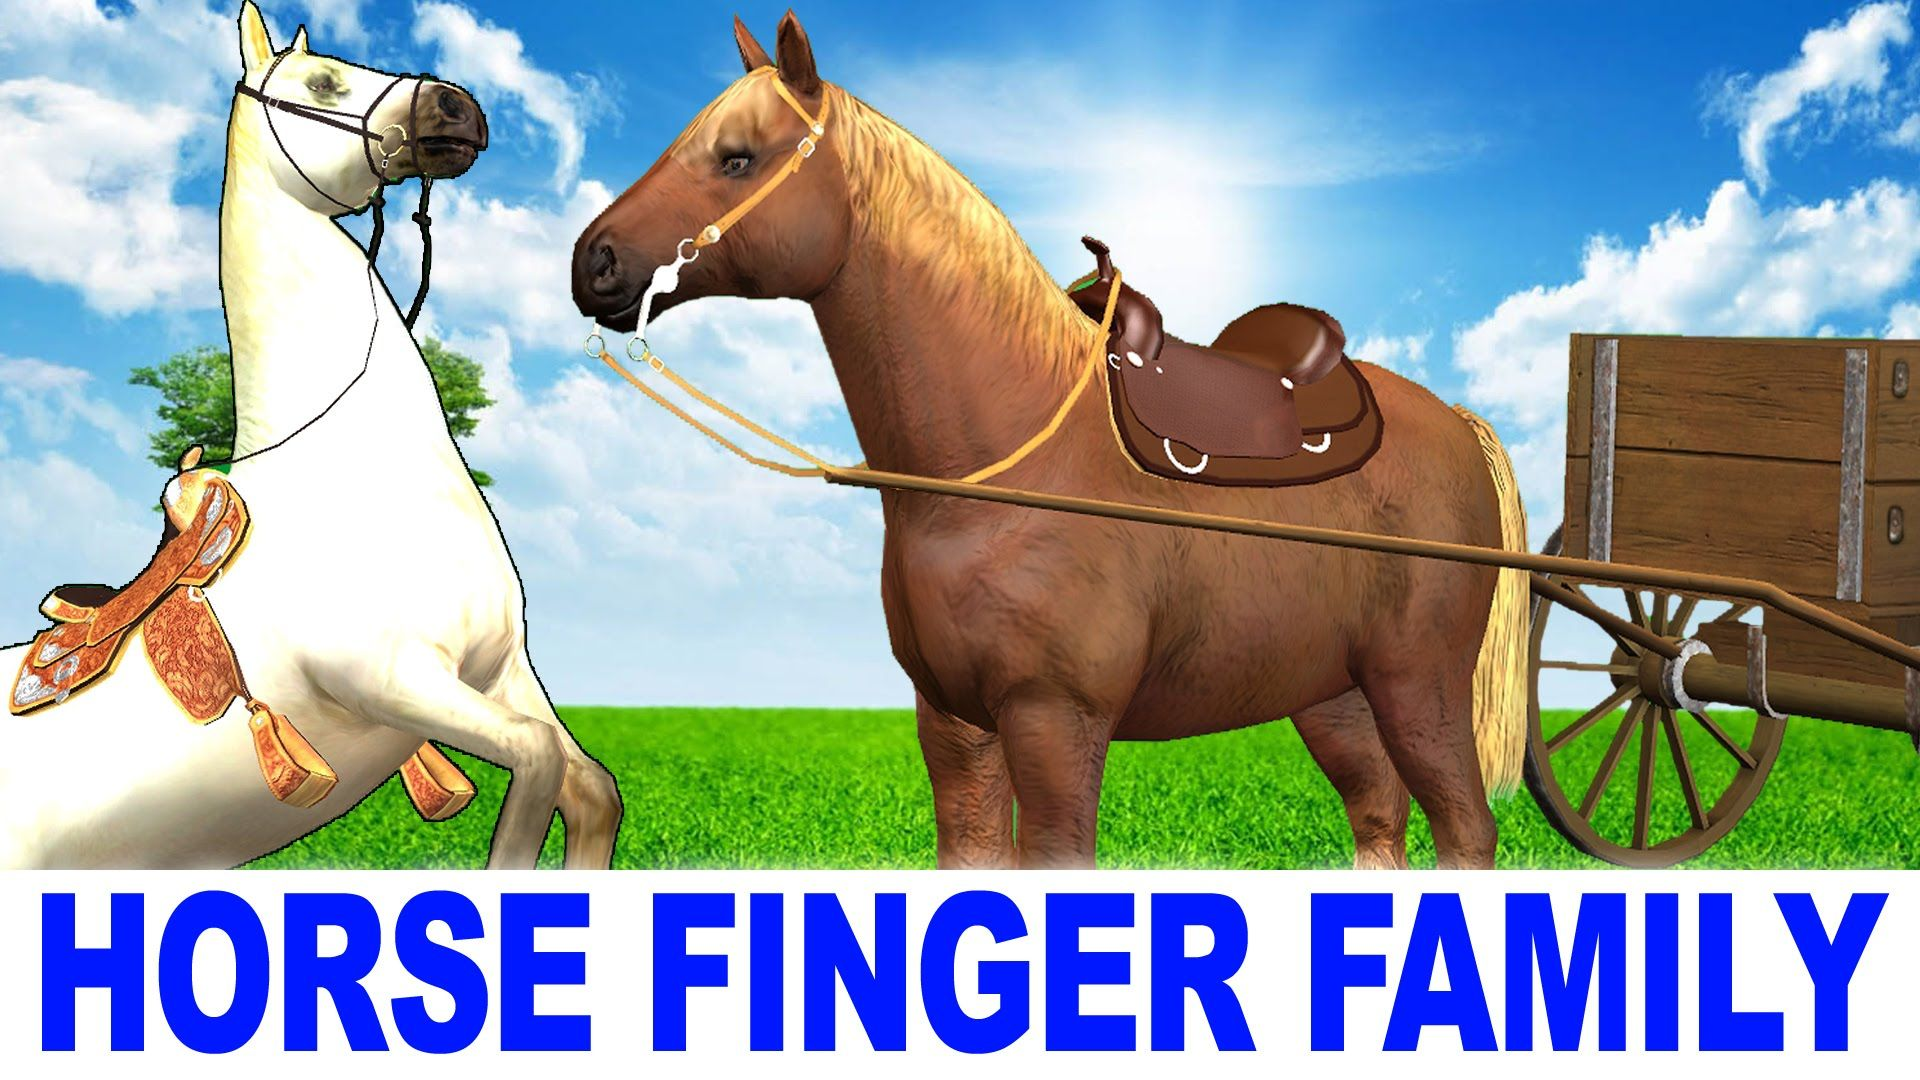 Nursery Rhymes Songs Horse Finger Family Children Kid